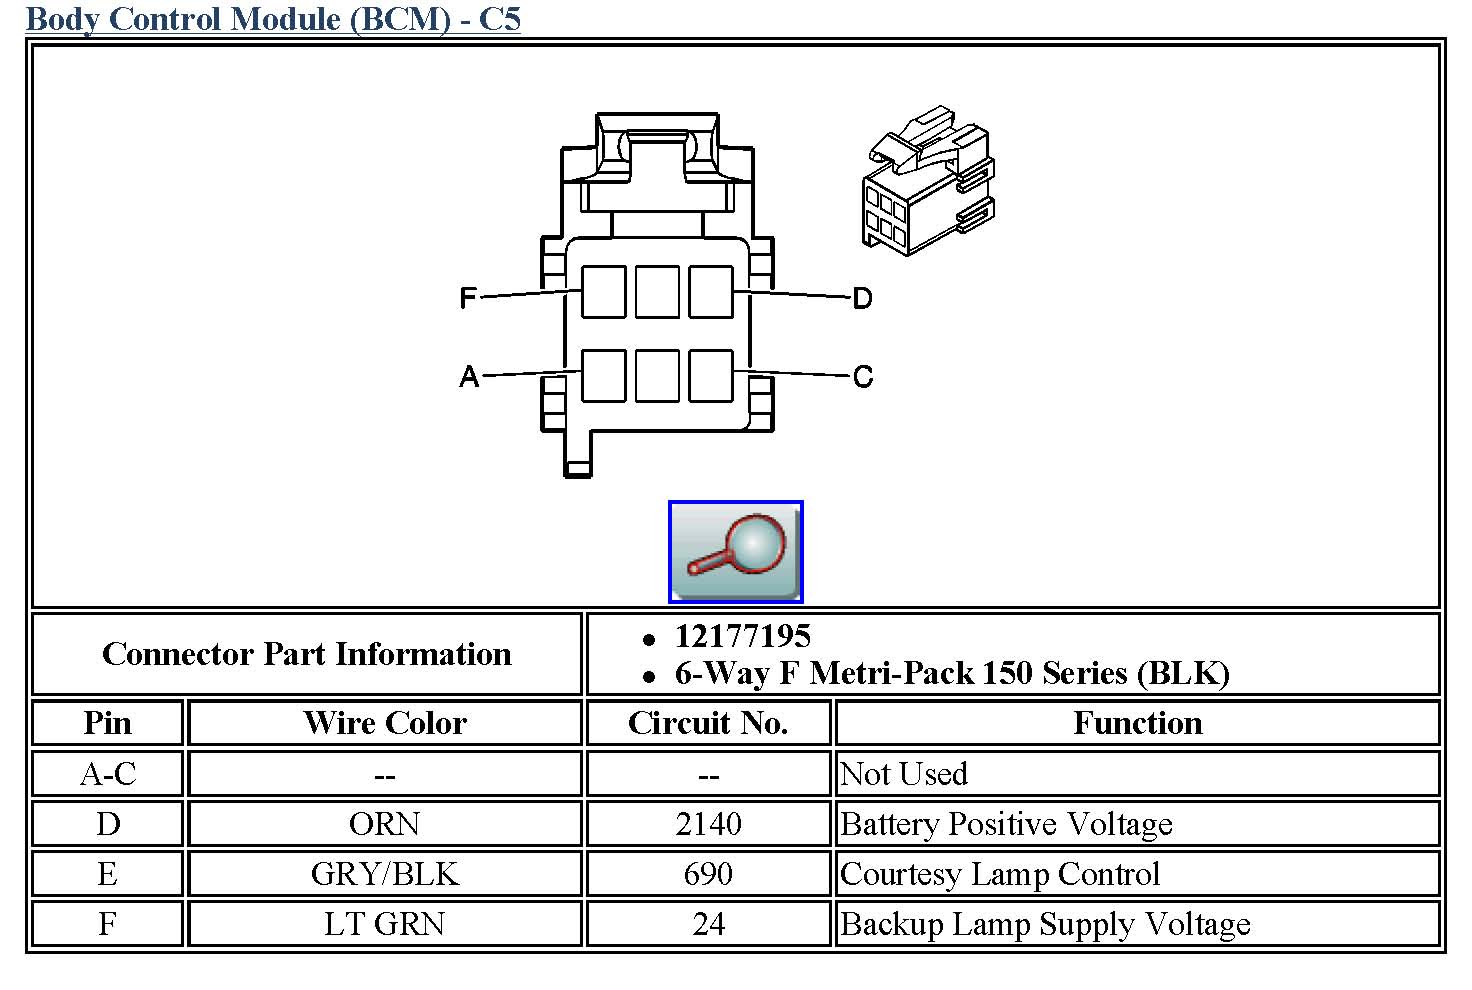 2009 chevy alalanche body control module wiring diagram